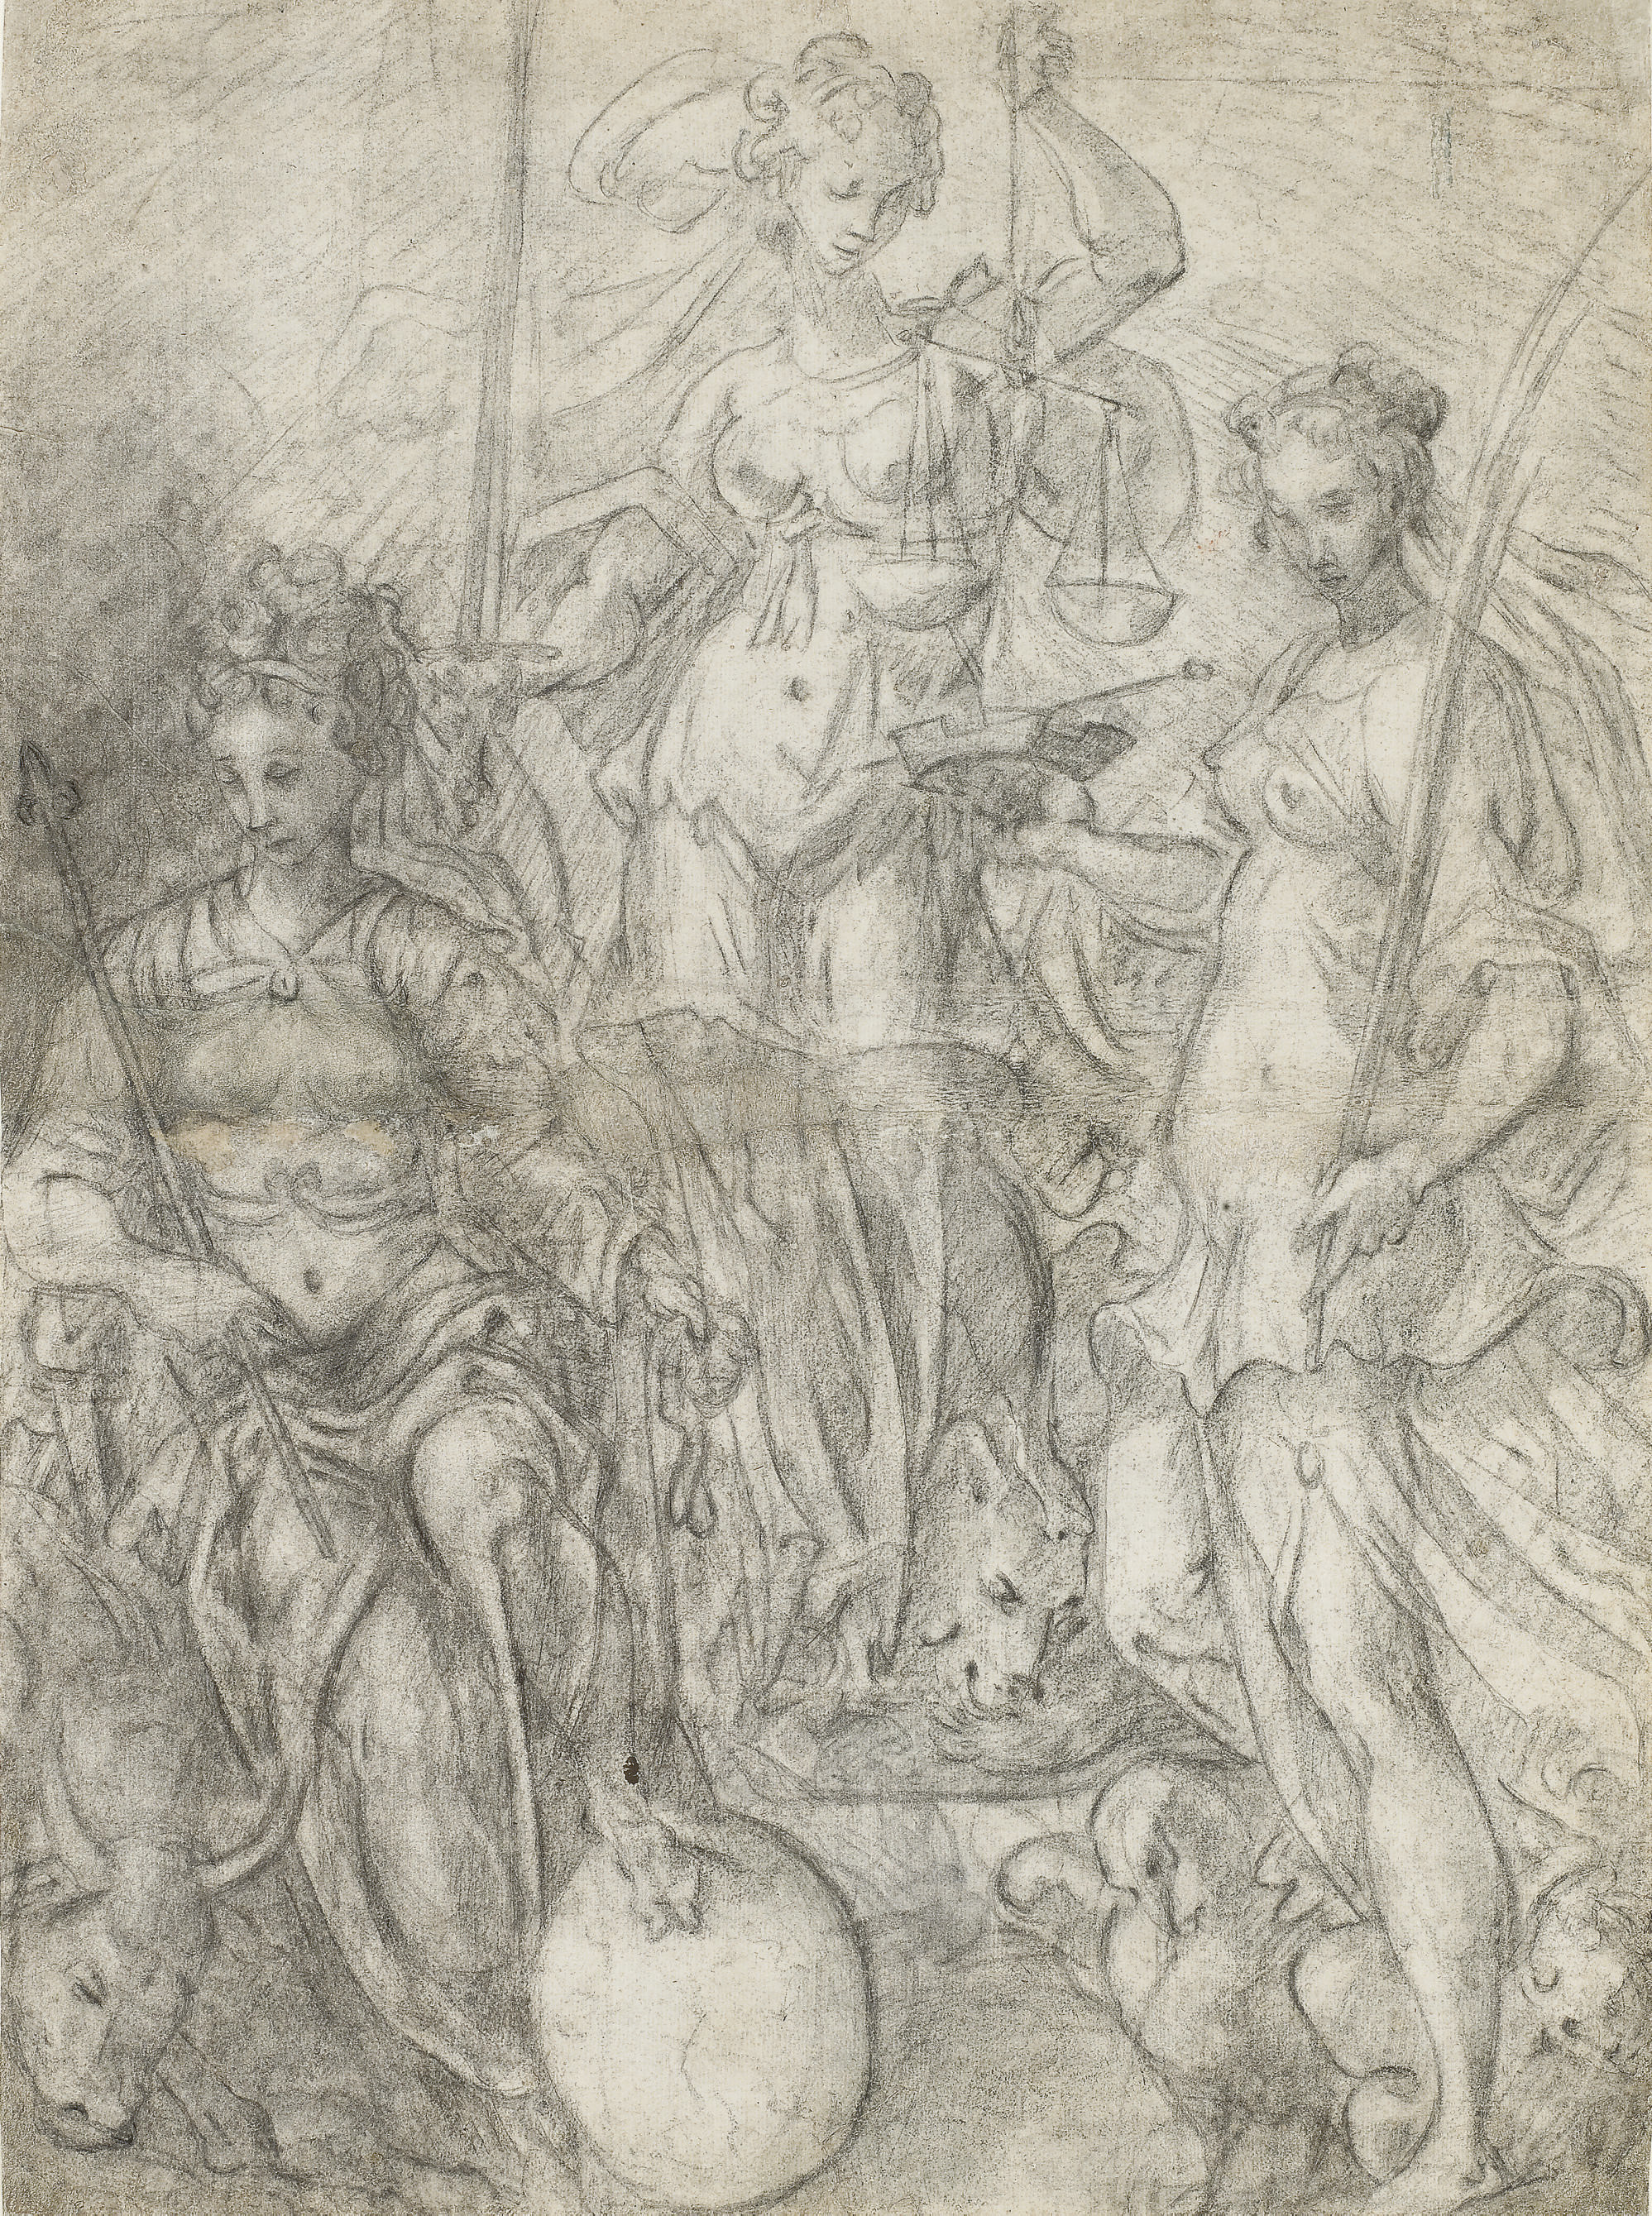 An Allegory of Temperance, Justice and Liberality